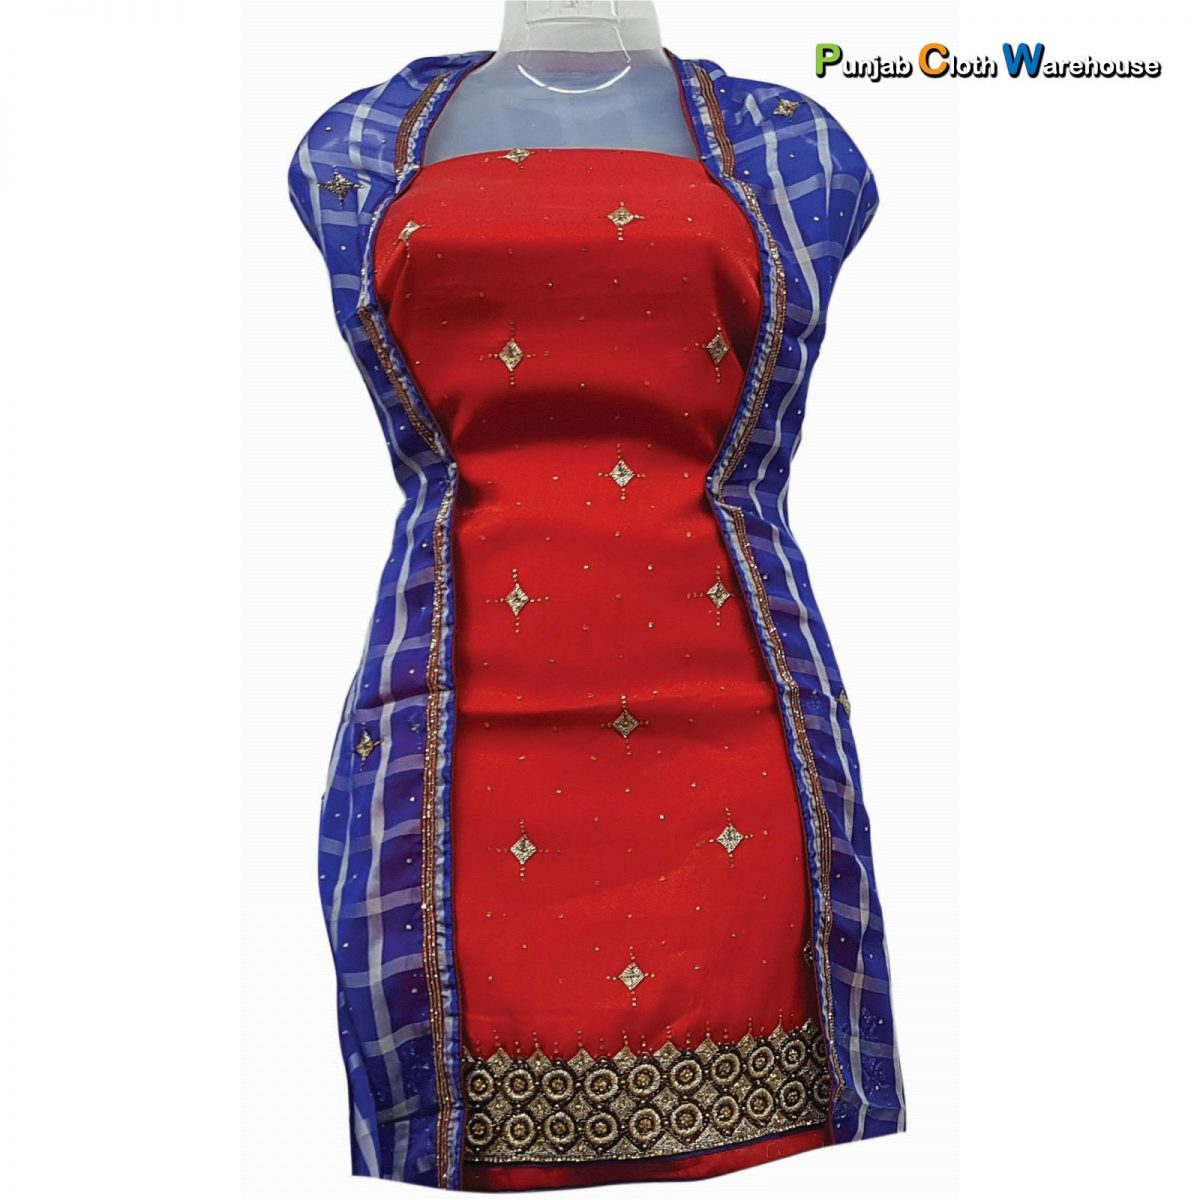 Ladies Suits - Cut Piece - Punjab Cloth Warehouse, Surrey (21)